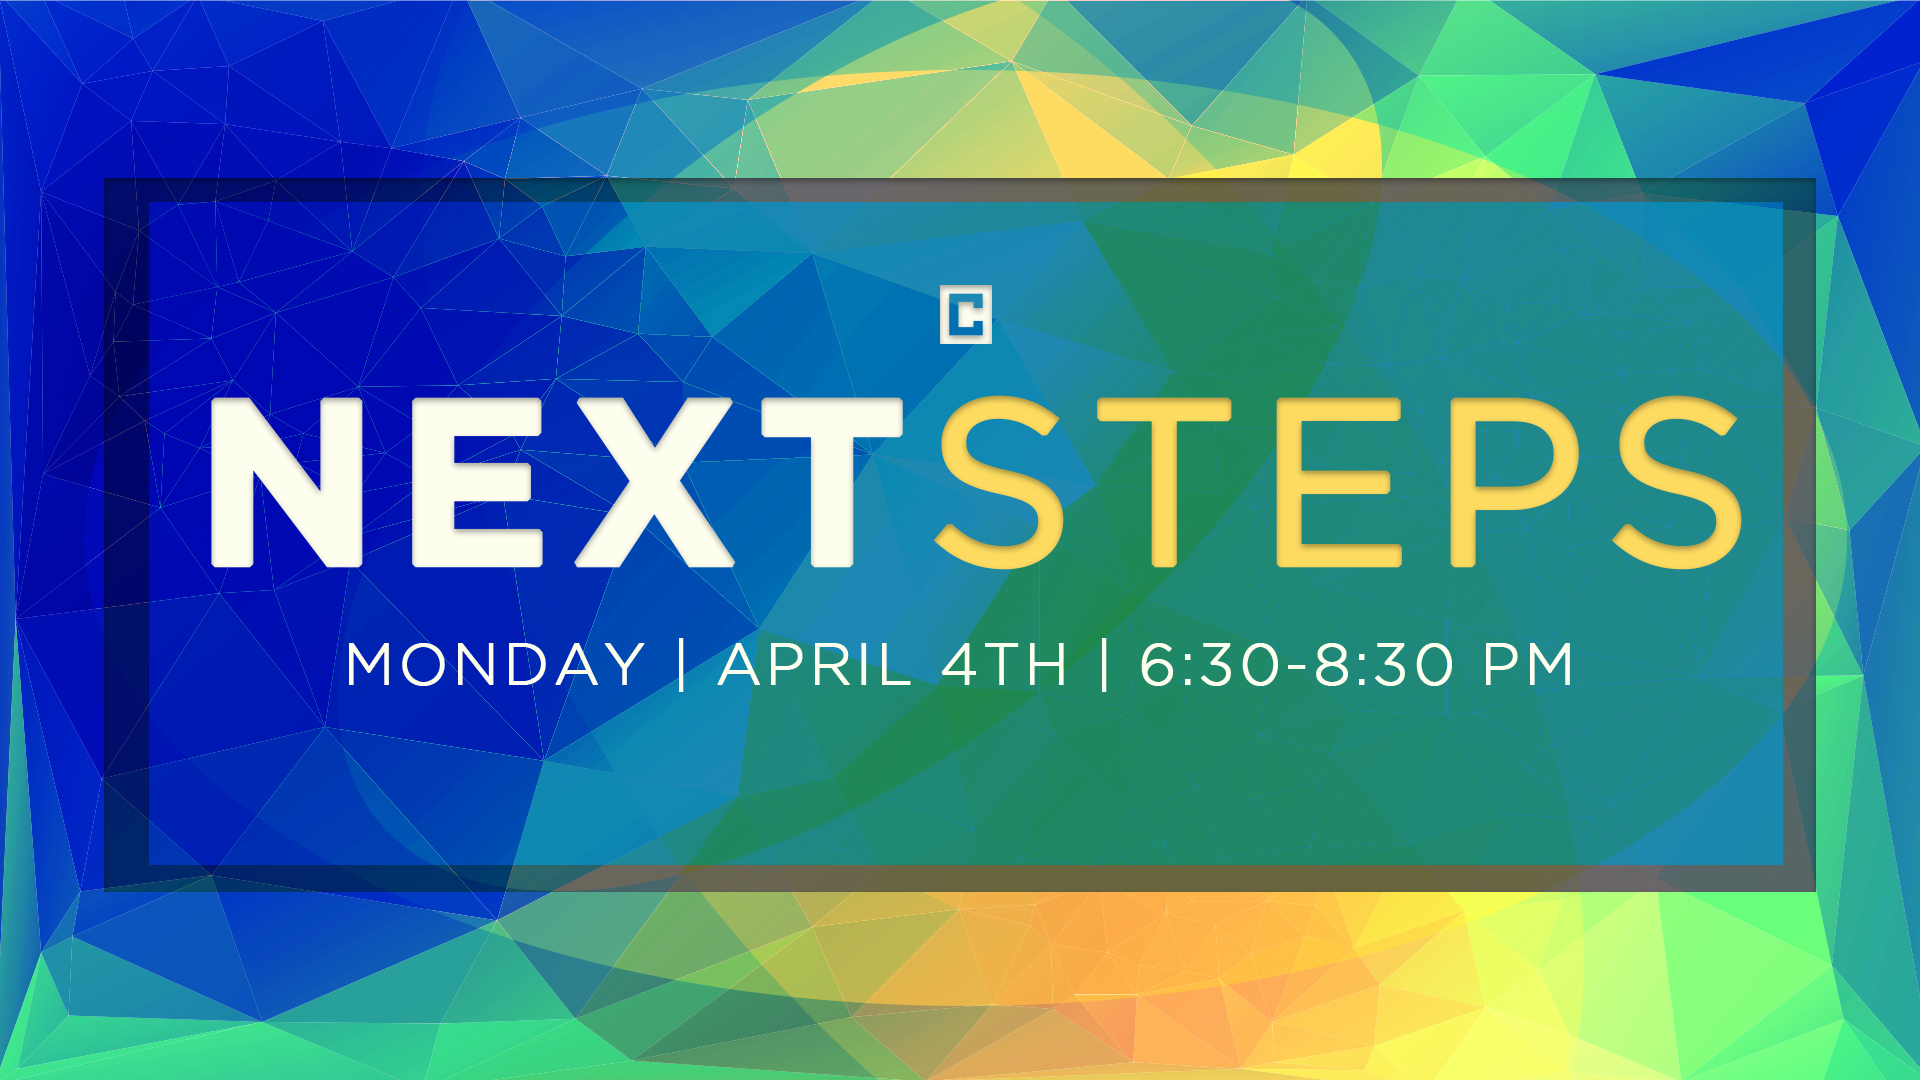 NEXT STEPS - APRIL 4 I 6:30 - 8:30PM    Next Steps is a process we've designed specifically to help you connect with Crossbridge. At Next Steps you'll have a chance to meet staff, learn about what kind of church we are and how to take your next step in getting connected at Crossbridge and growing as a follower of Jesus. Childcare is available (birth-5th grade) with a reservation or childcare reimbursements are available. We'll serve the best meal you have ever had (Okay it may not be the best but it will be good!). Sign-up for the class and childcare   HERE  !